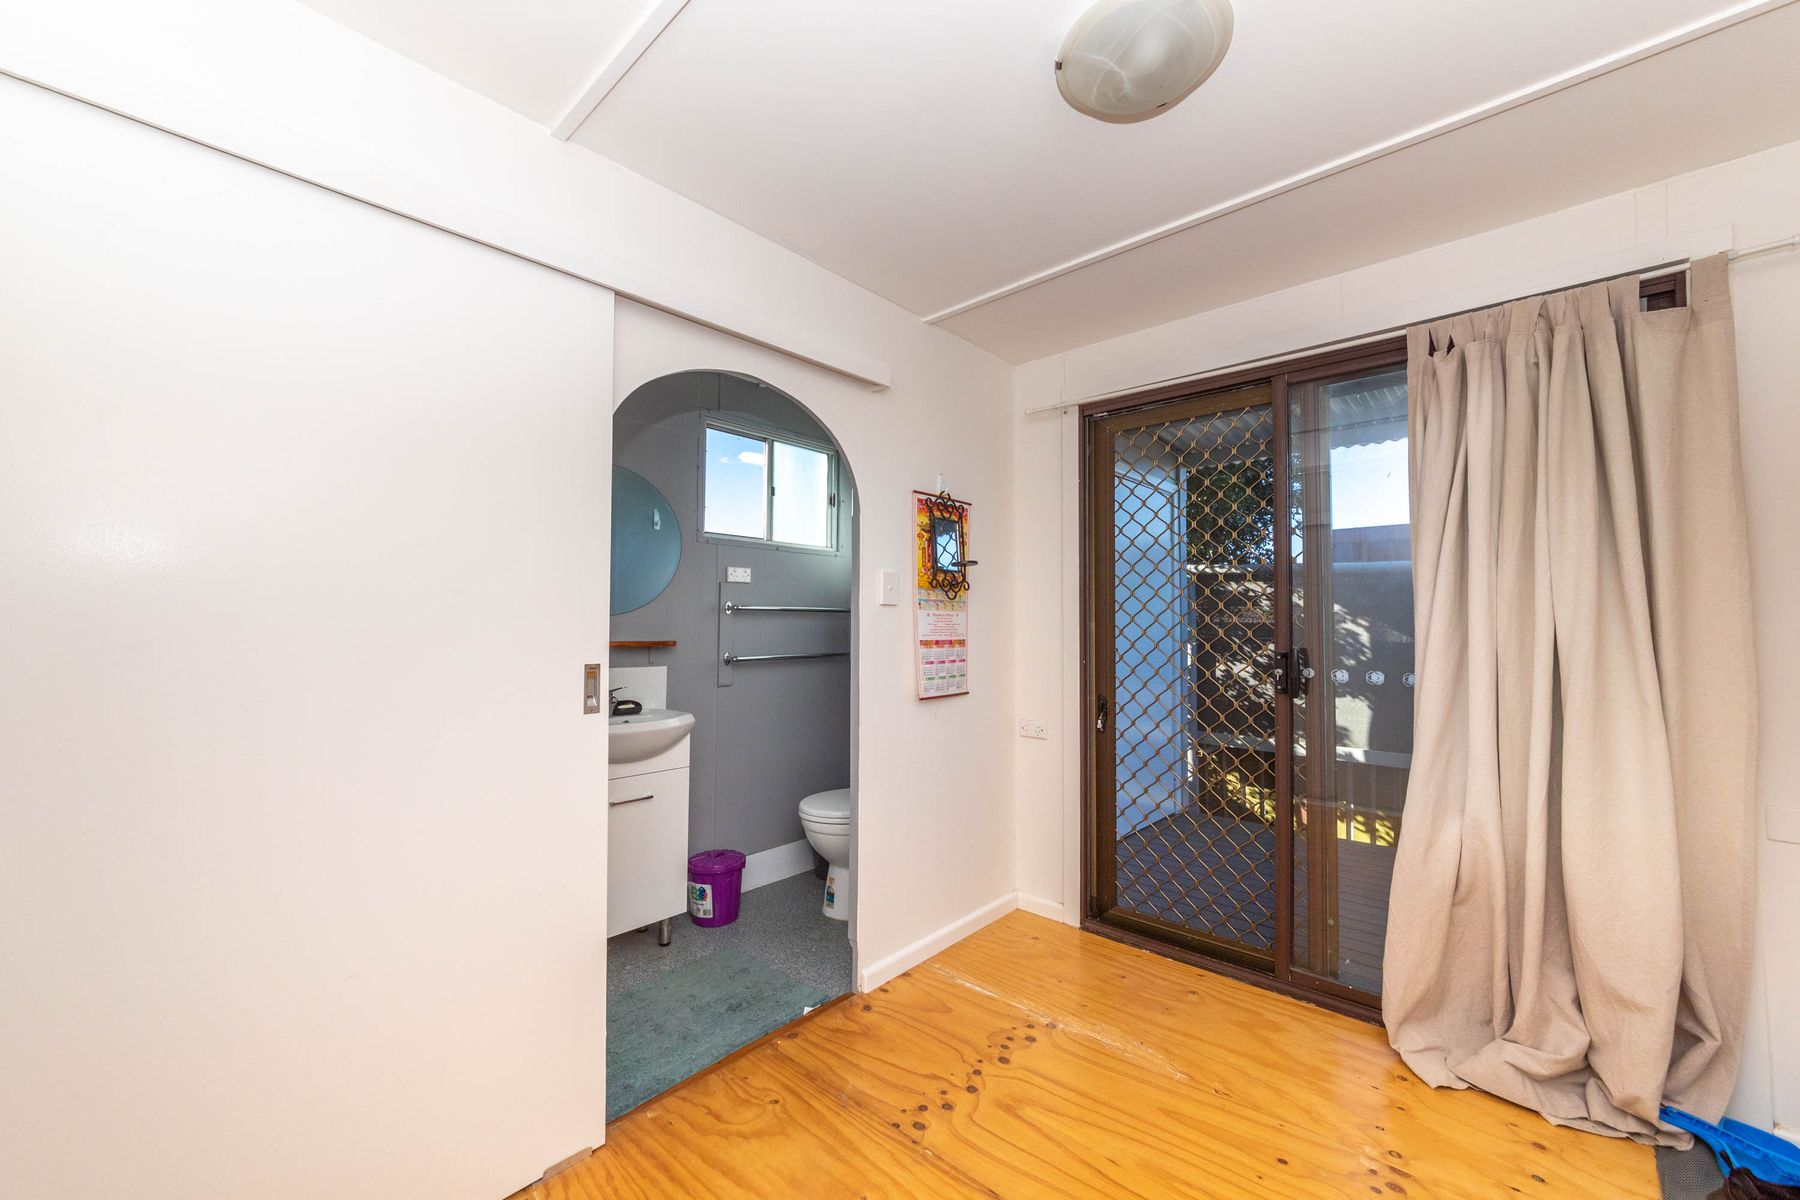 21/491 River Street, West Ballina, NSW 2478